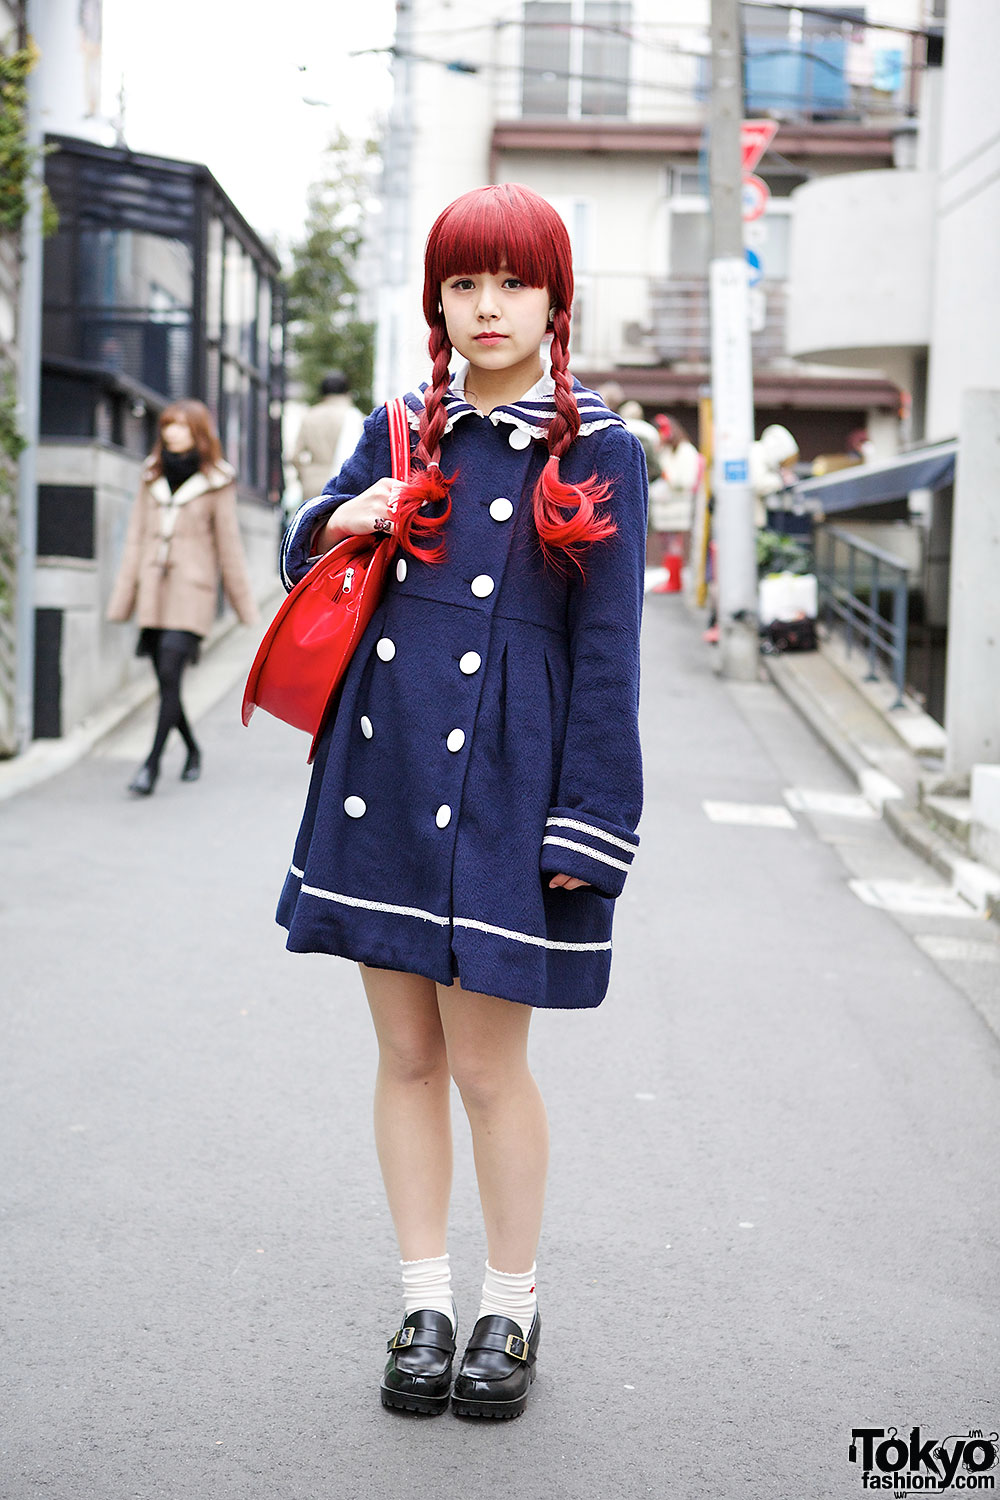 Cute Sailor Coat Heart Handbag Loafers In Harajuku